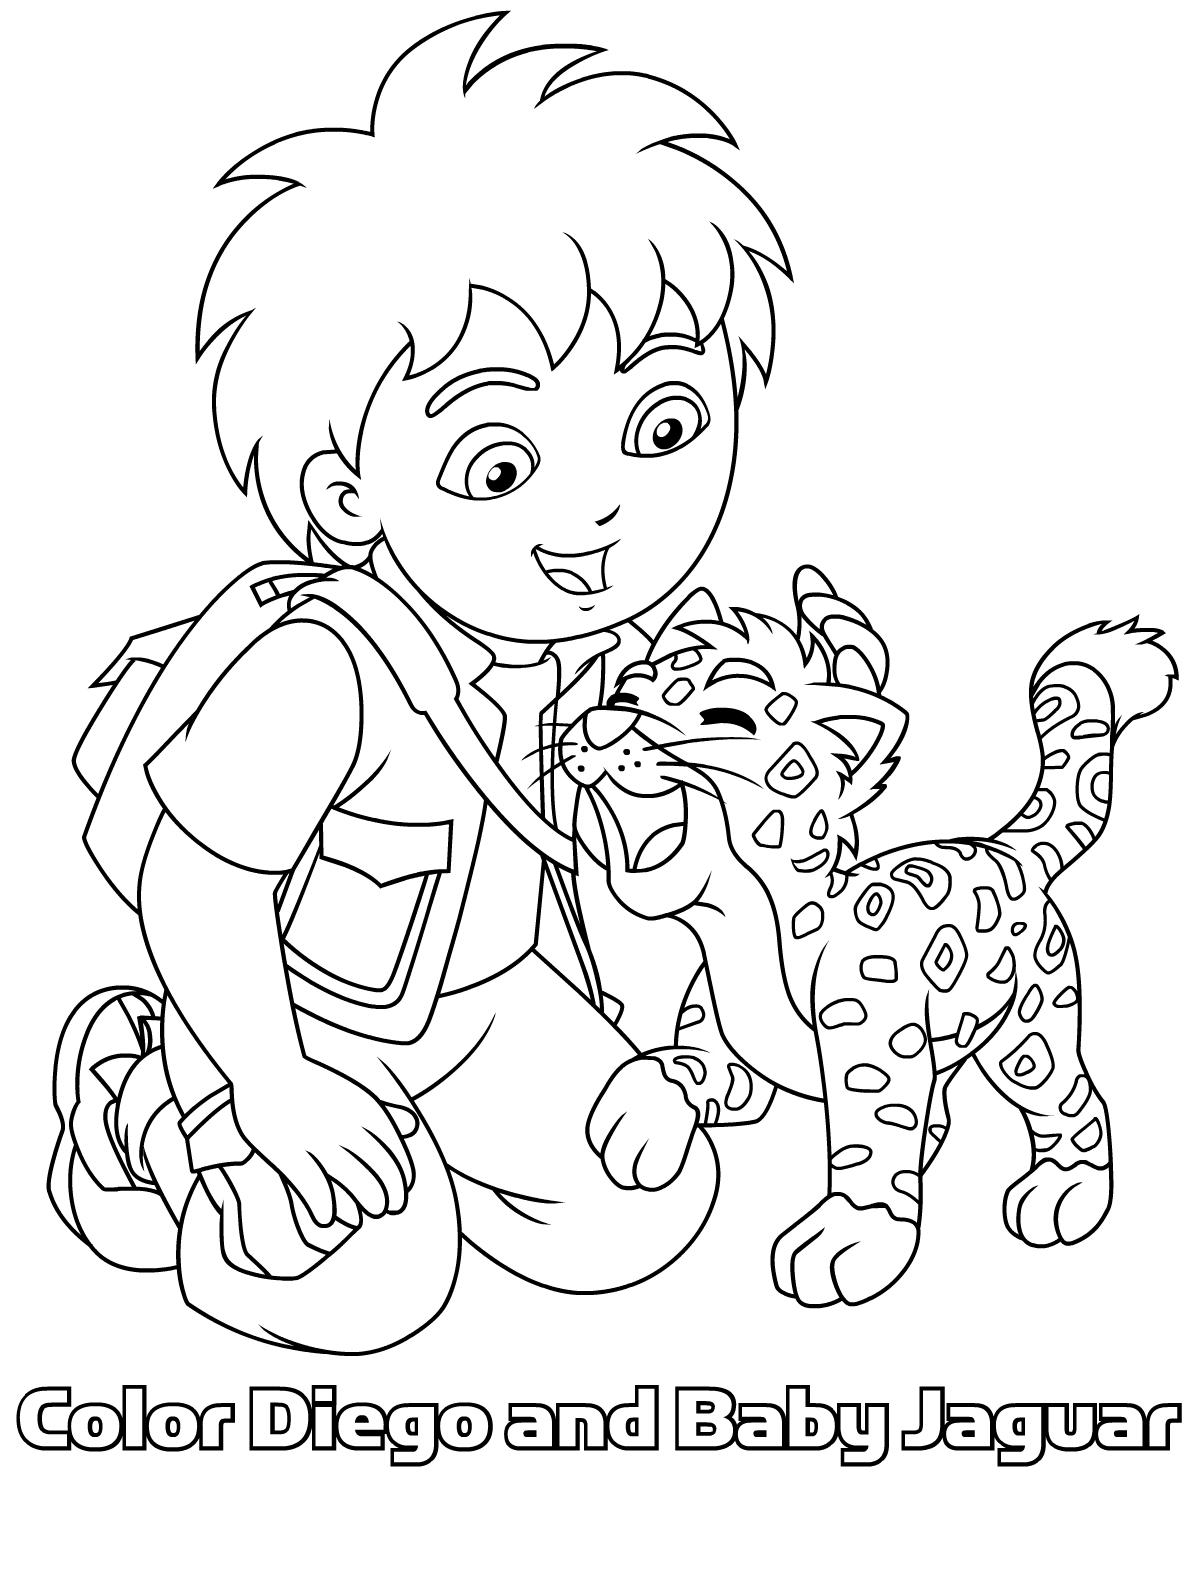 coloring pages baby jaguar - photo#20